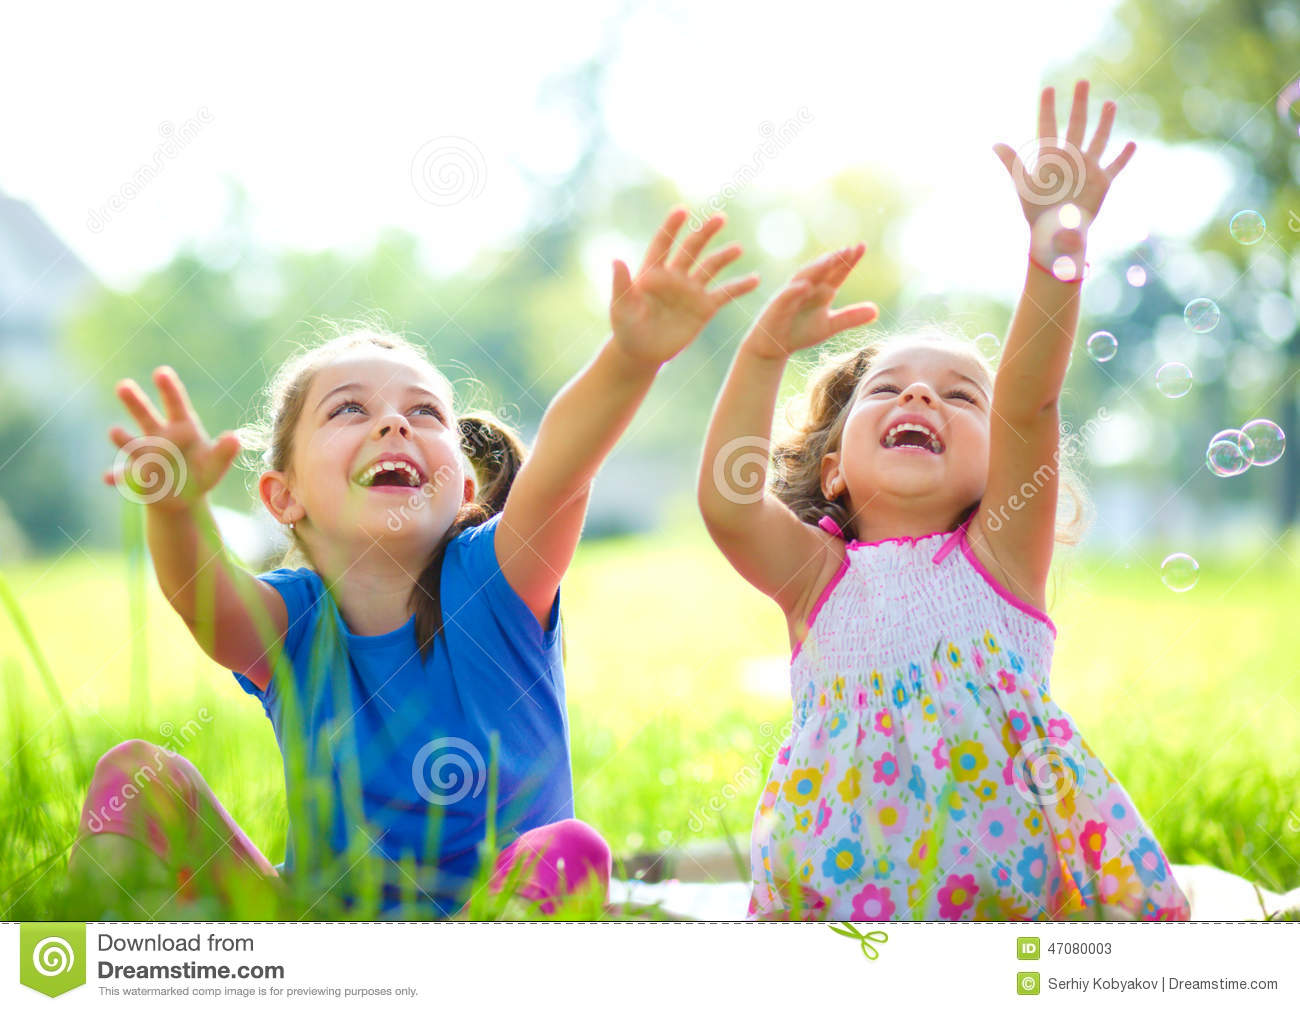 Two little girls are catching soap bubbles